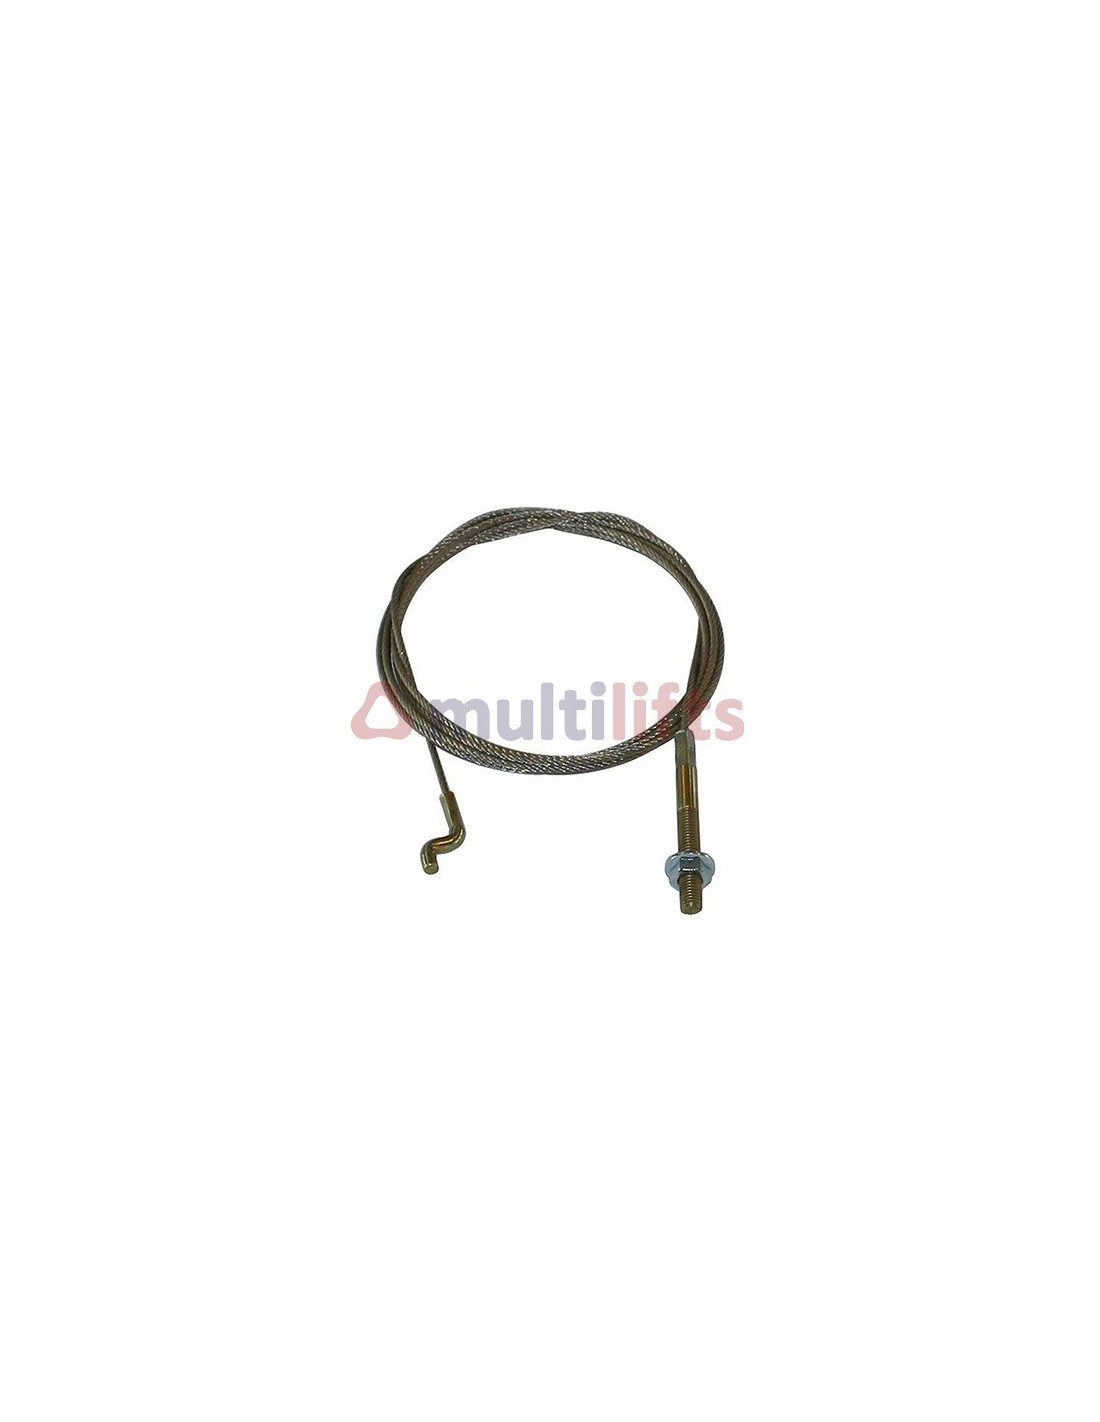 CABLE COUNTERWEIGHT SCHINDLER L: 2850 C2/VAR30 962544